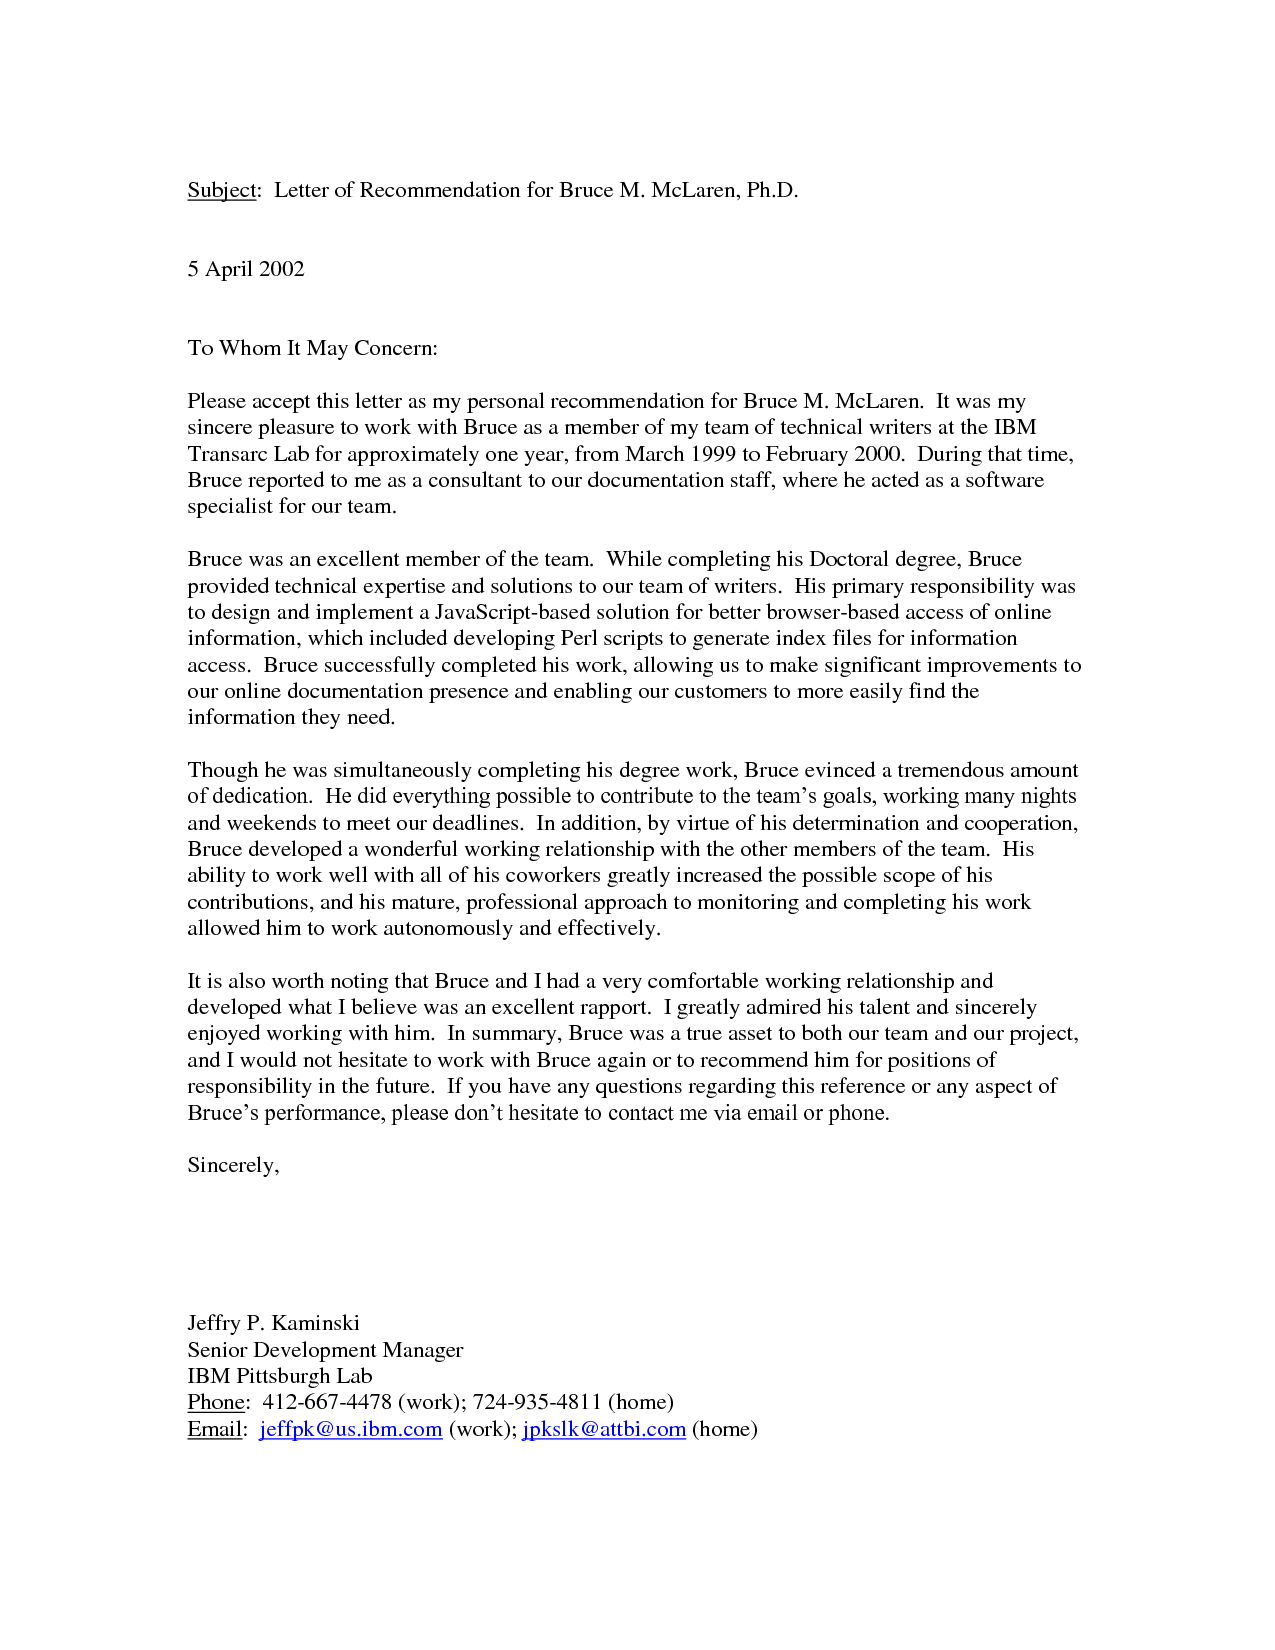 Personal Reference Letter Of RecommendationLetter Of Recommendation ...